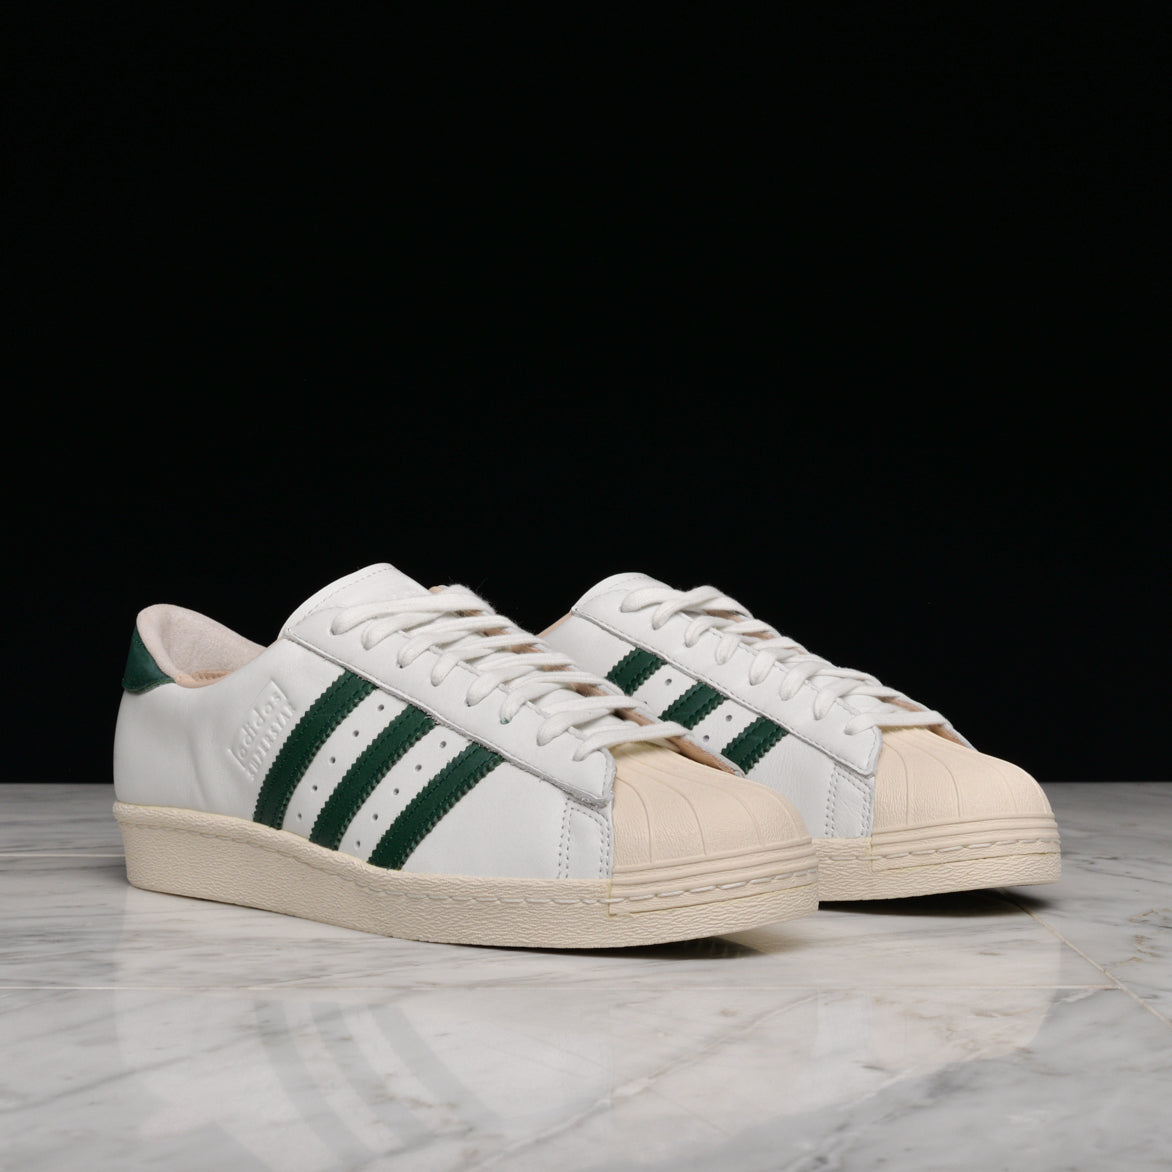 SUPERSTAR 80s RECON - WHITE / COLLEGIATE GREEN